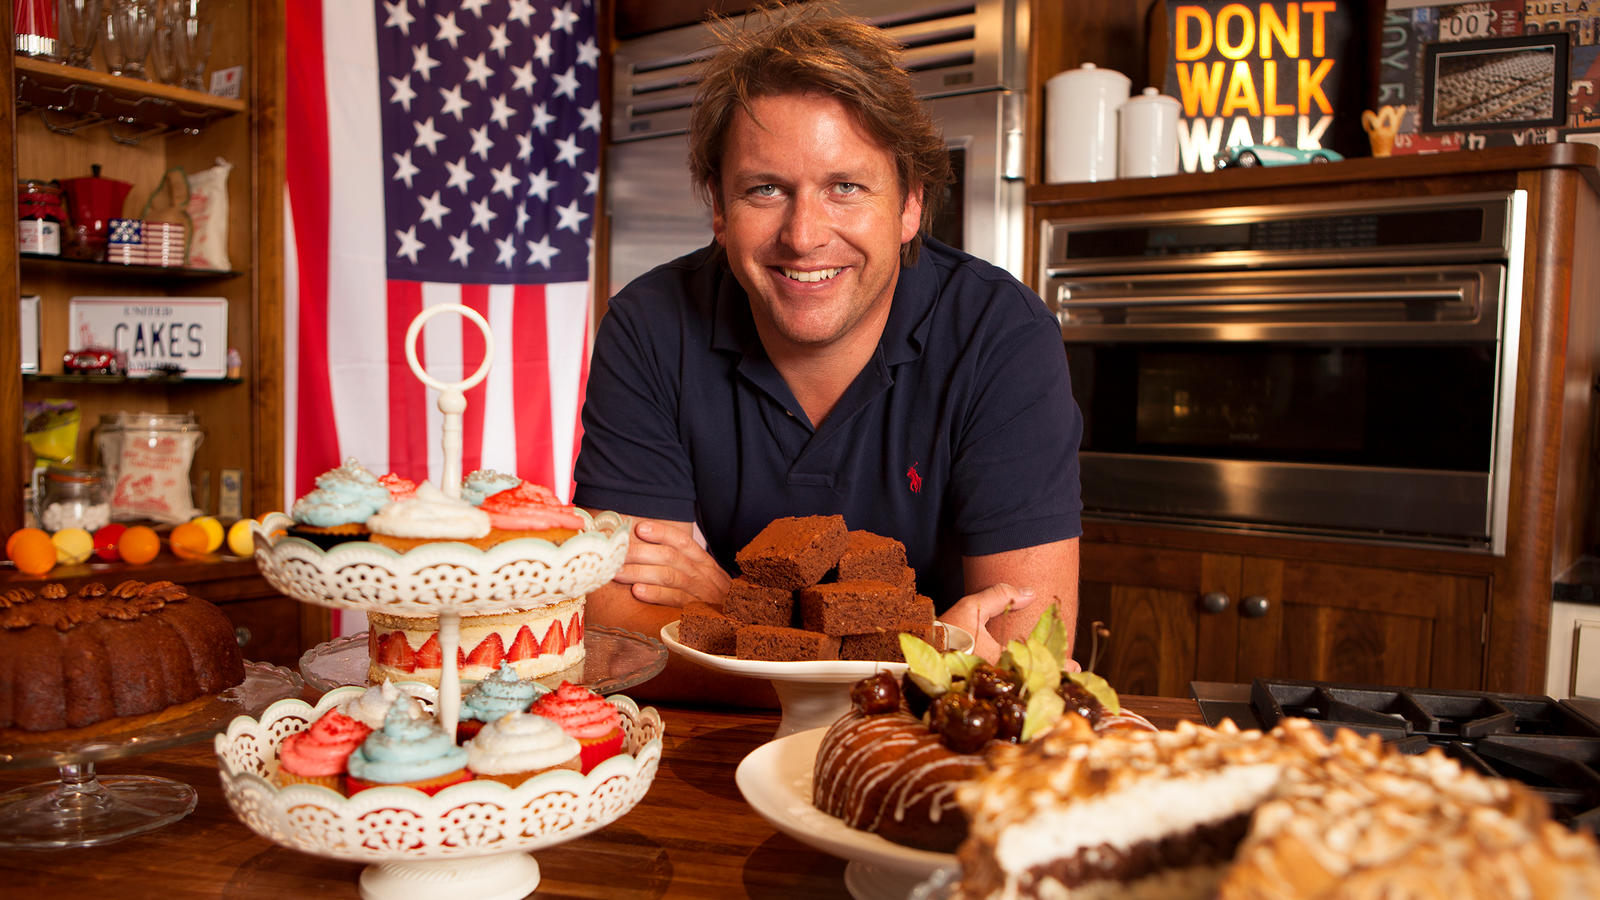 Good Food Channel Cakes Of America